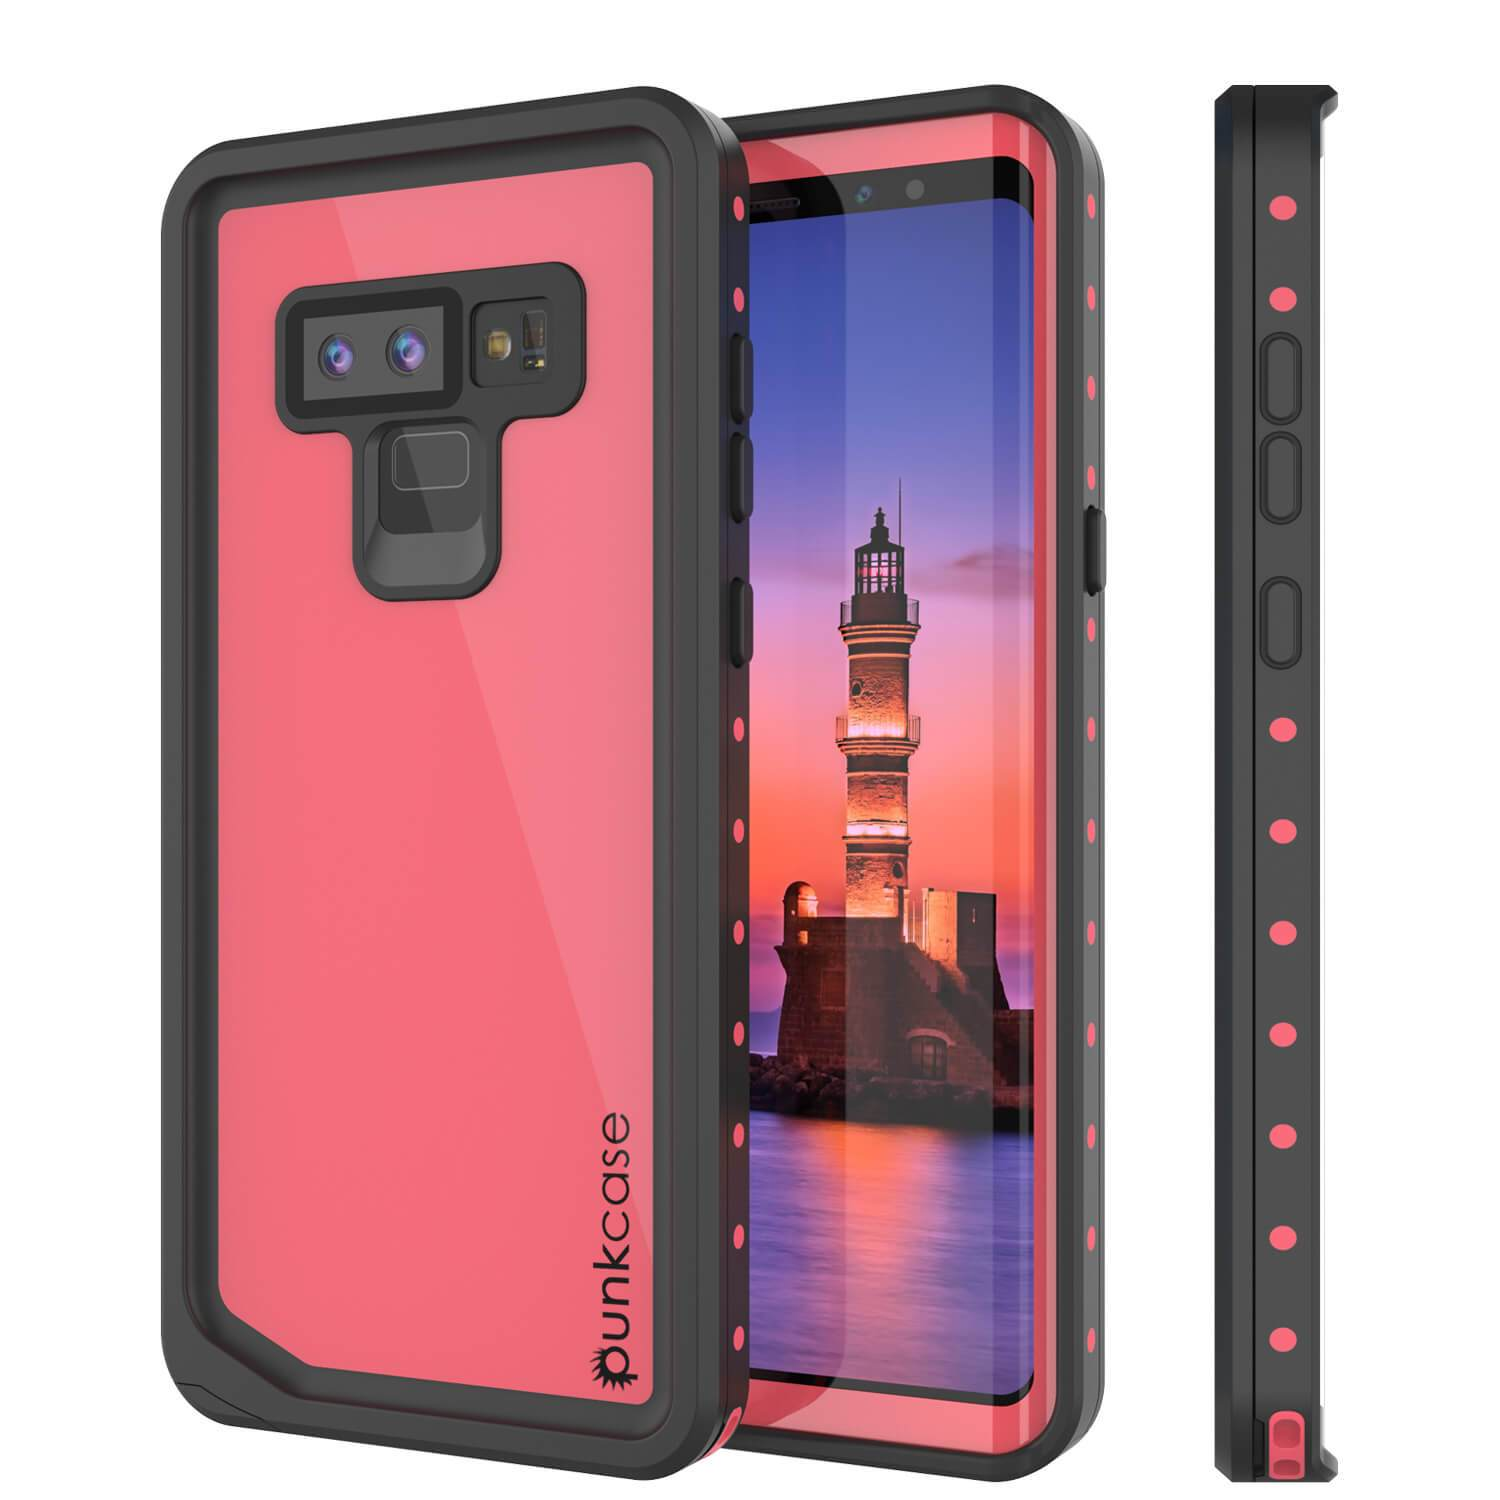 Galaxy Note 9 Waterproof Case PunkCase StudStar [Pink] Thin 6.6ft